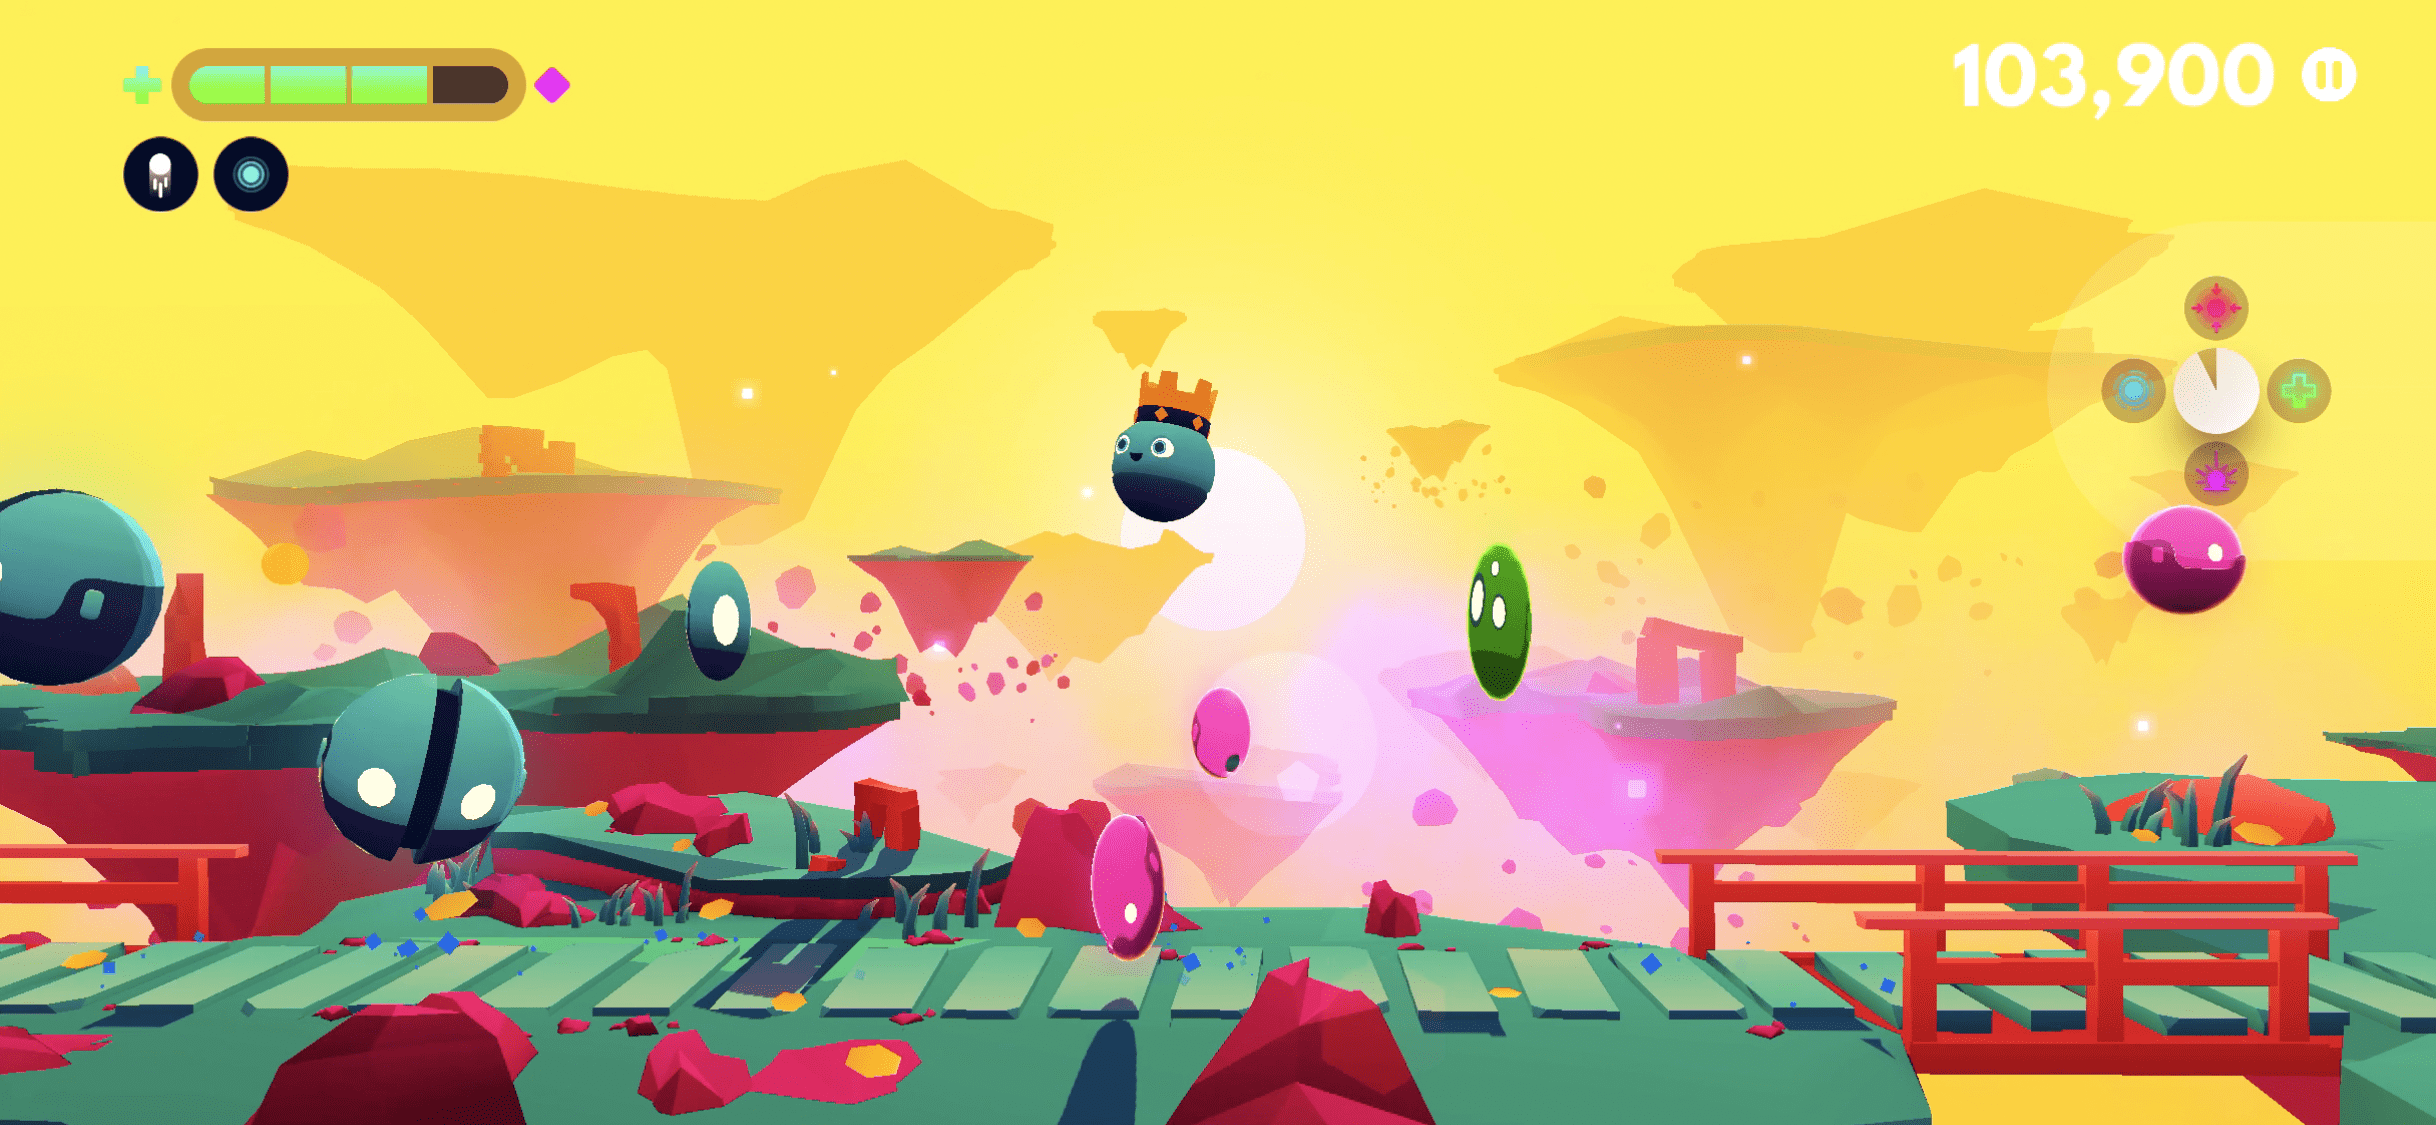 Bouncy Smash Review: Colorful and upbeat fun